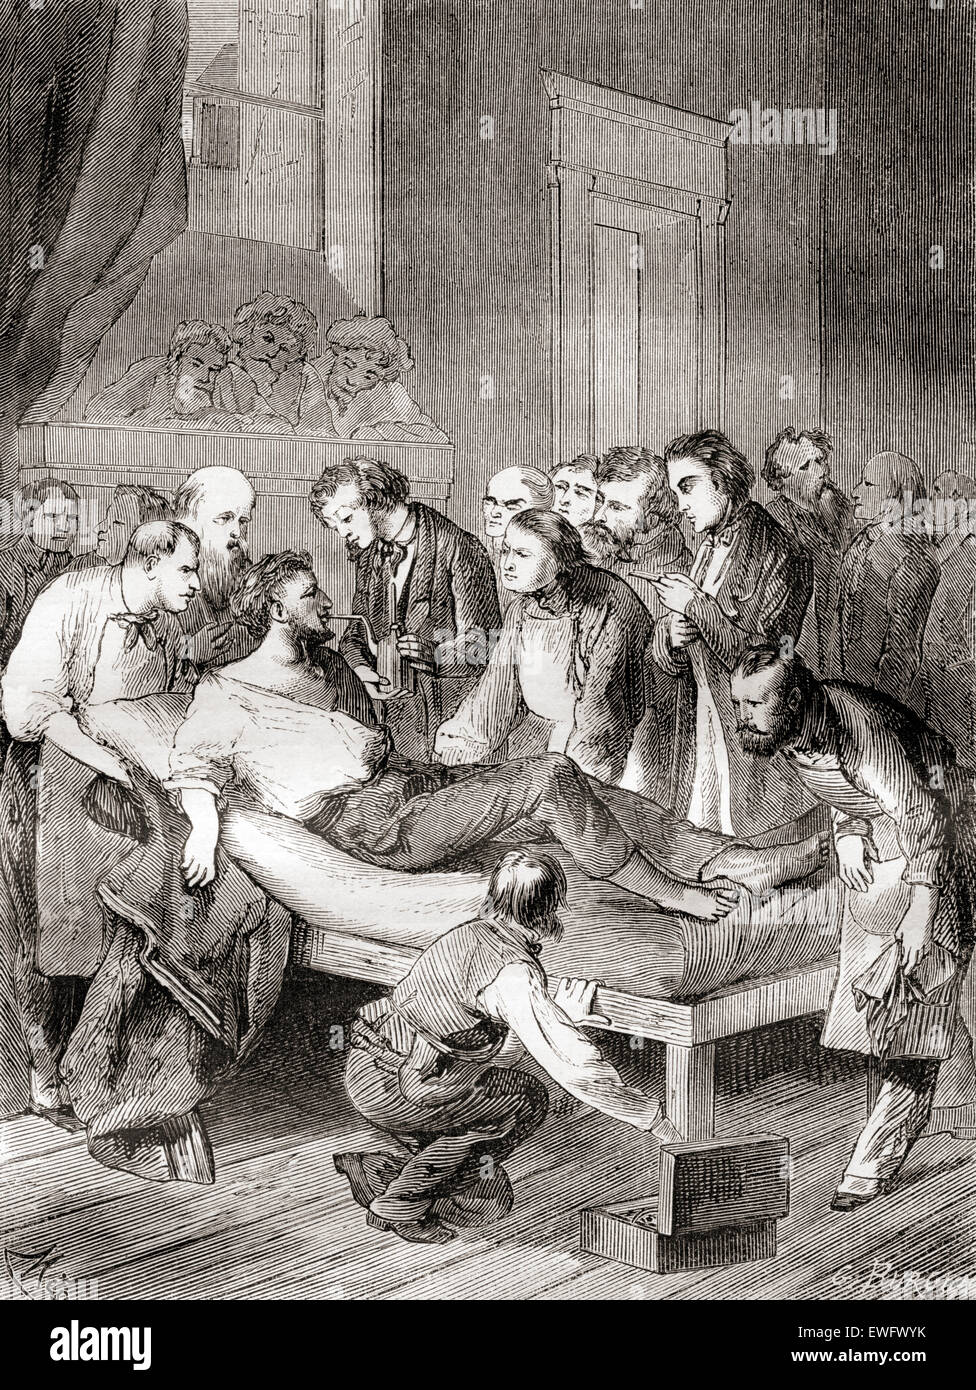 The first public demonstration of the use of inhaled ether as a surgical anesthetic in 1846 by an American dentist, - Stock Image